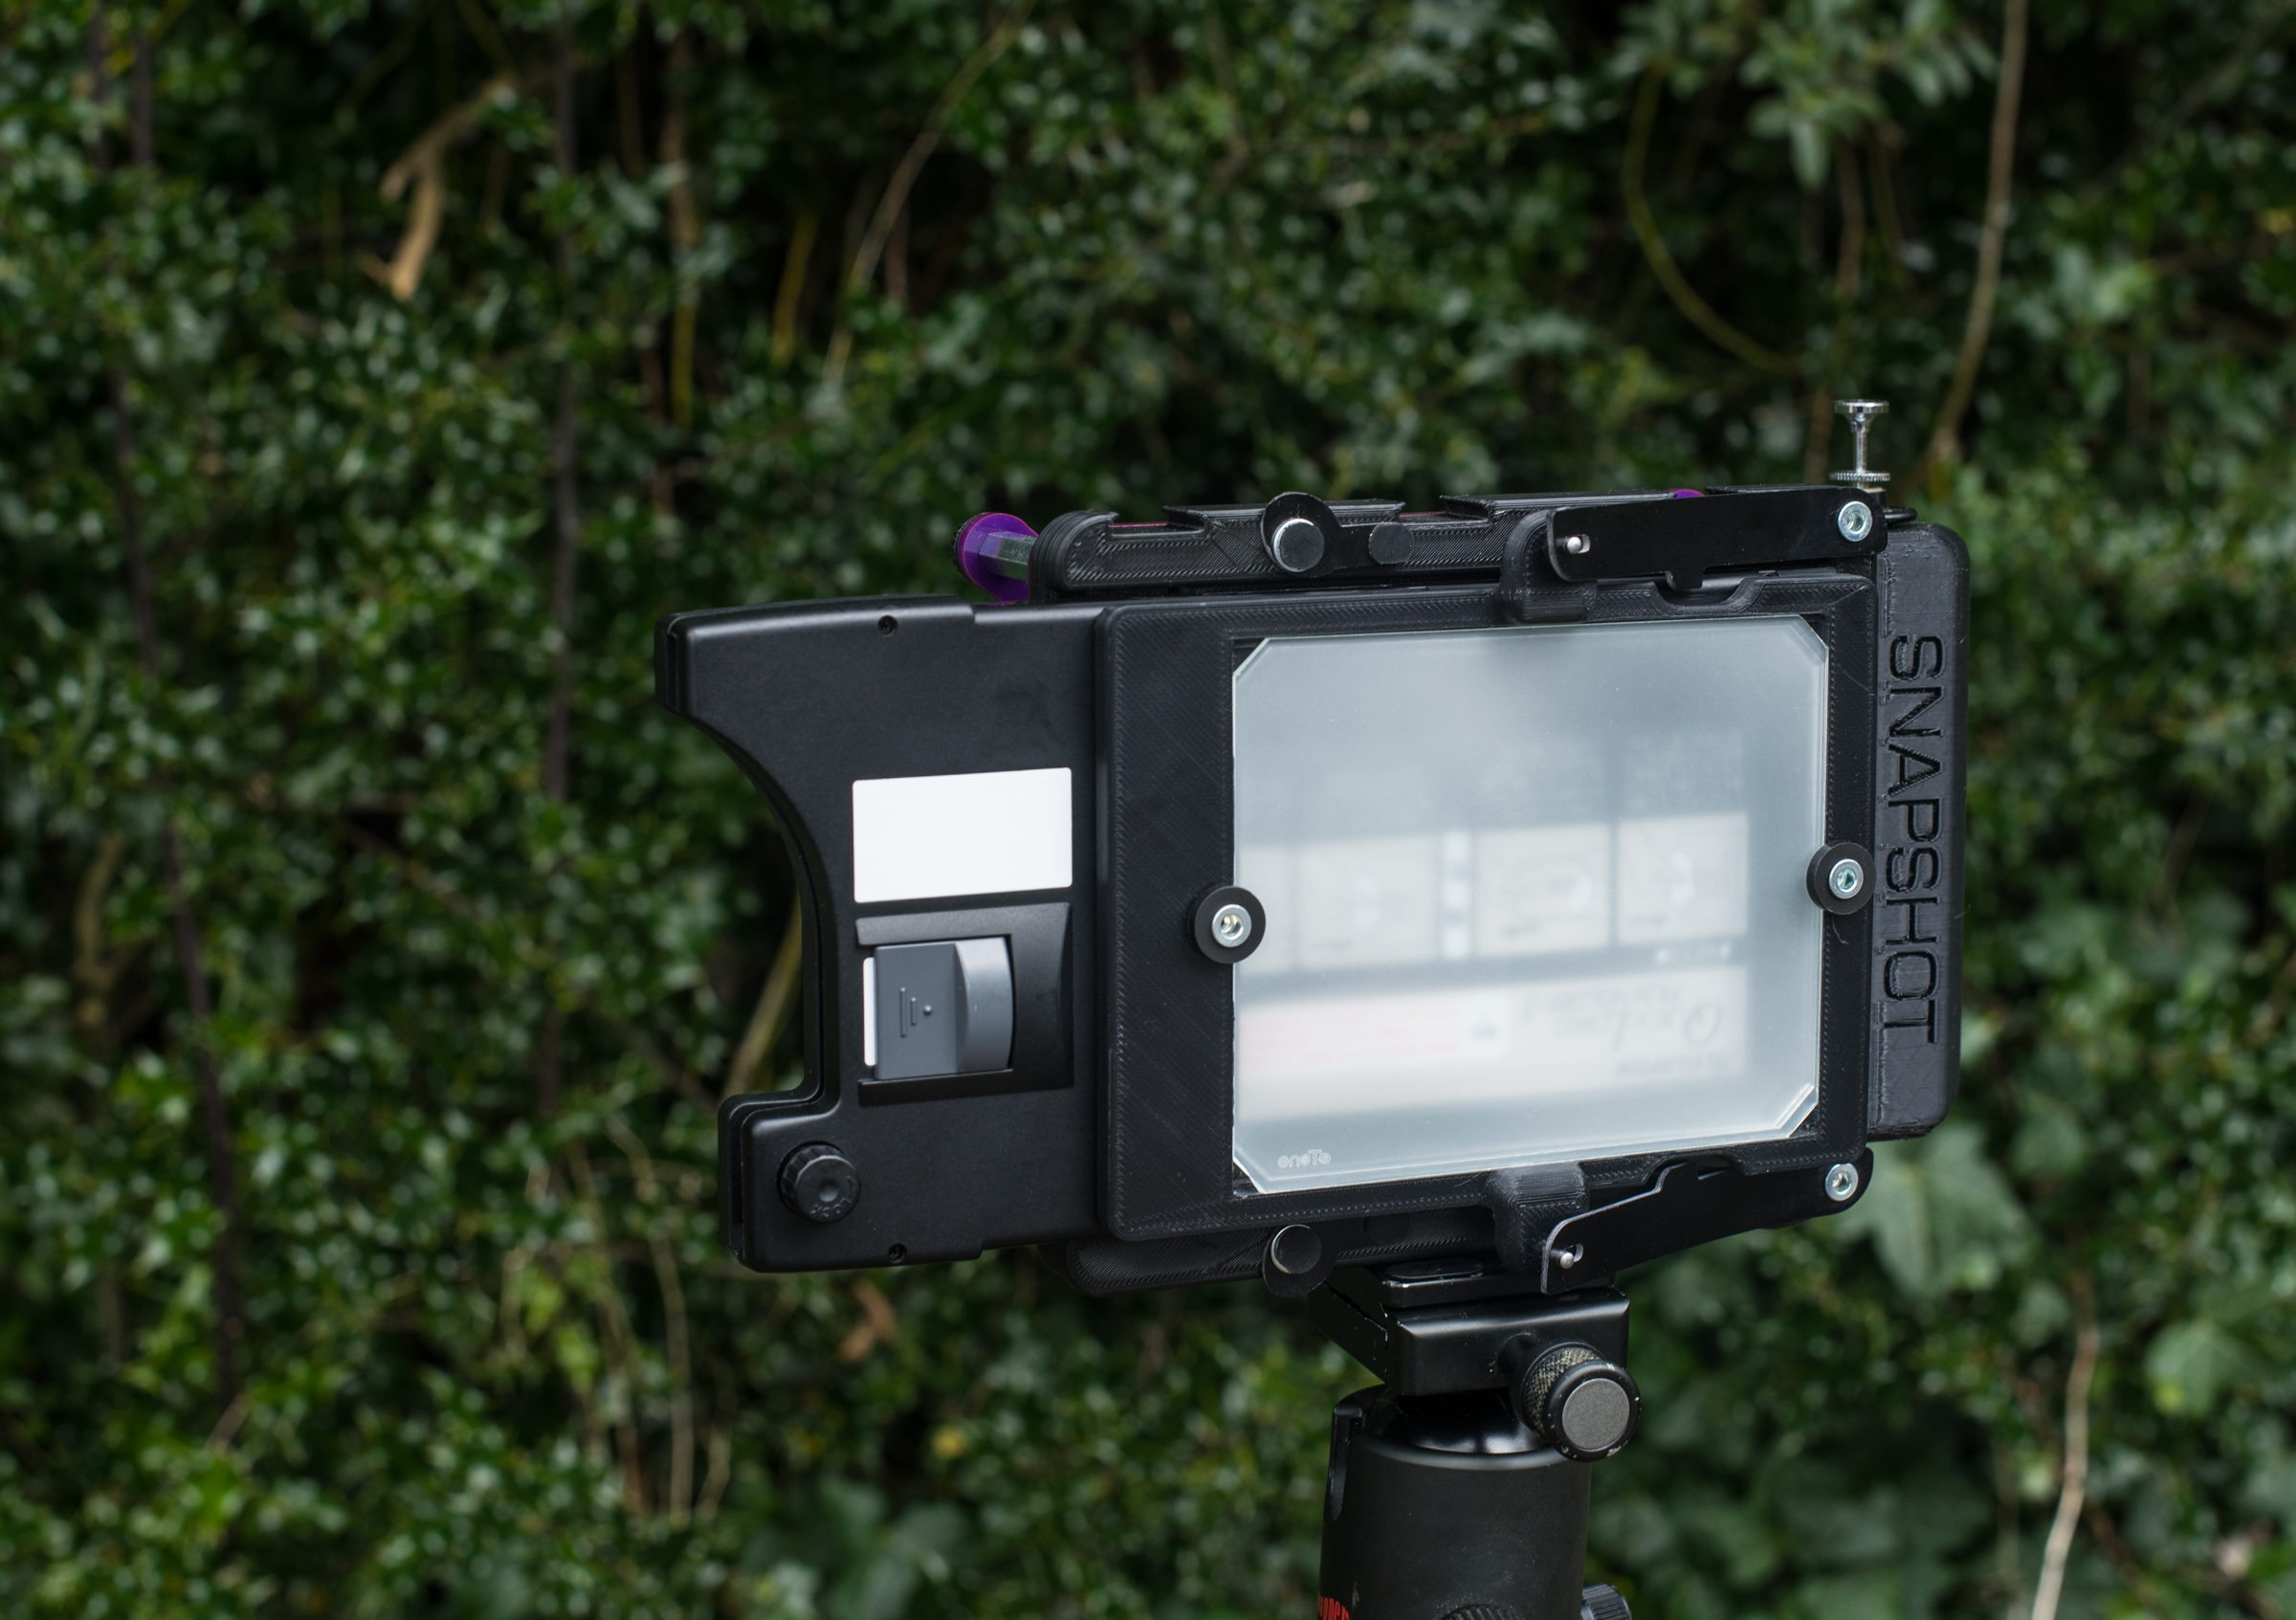 Camera with plate (Pic: Steve Lloyd)